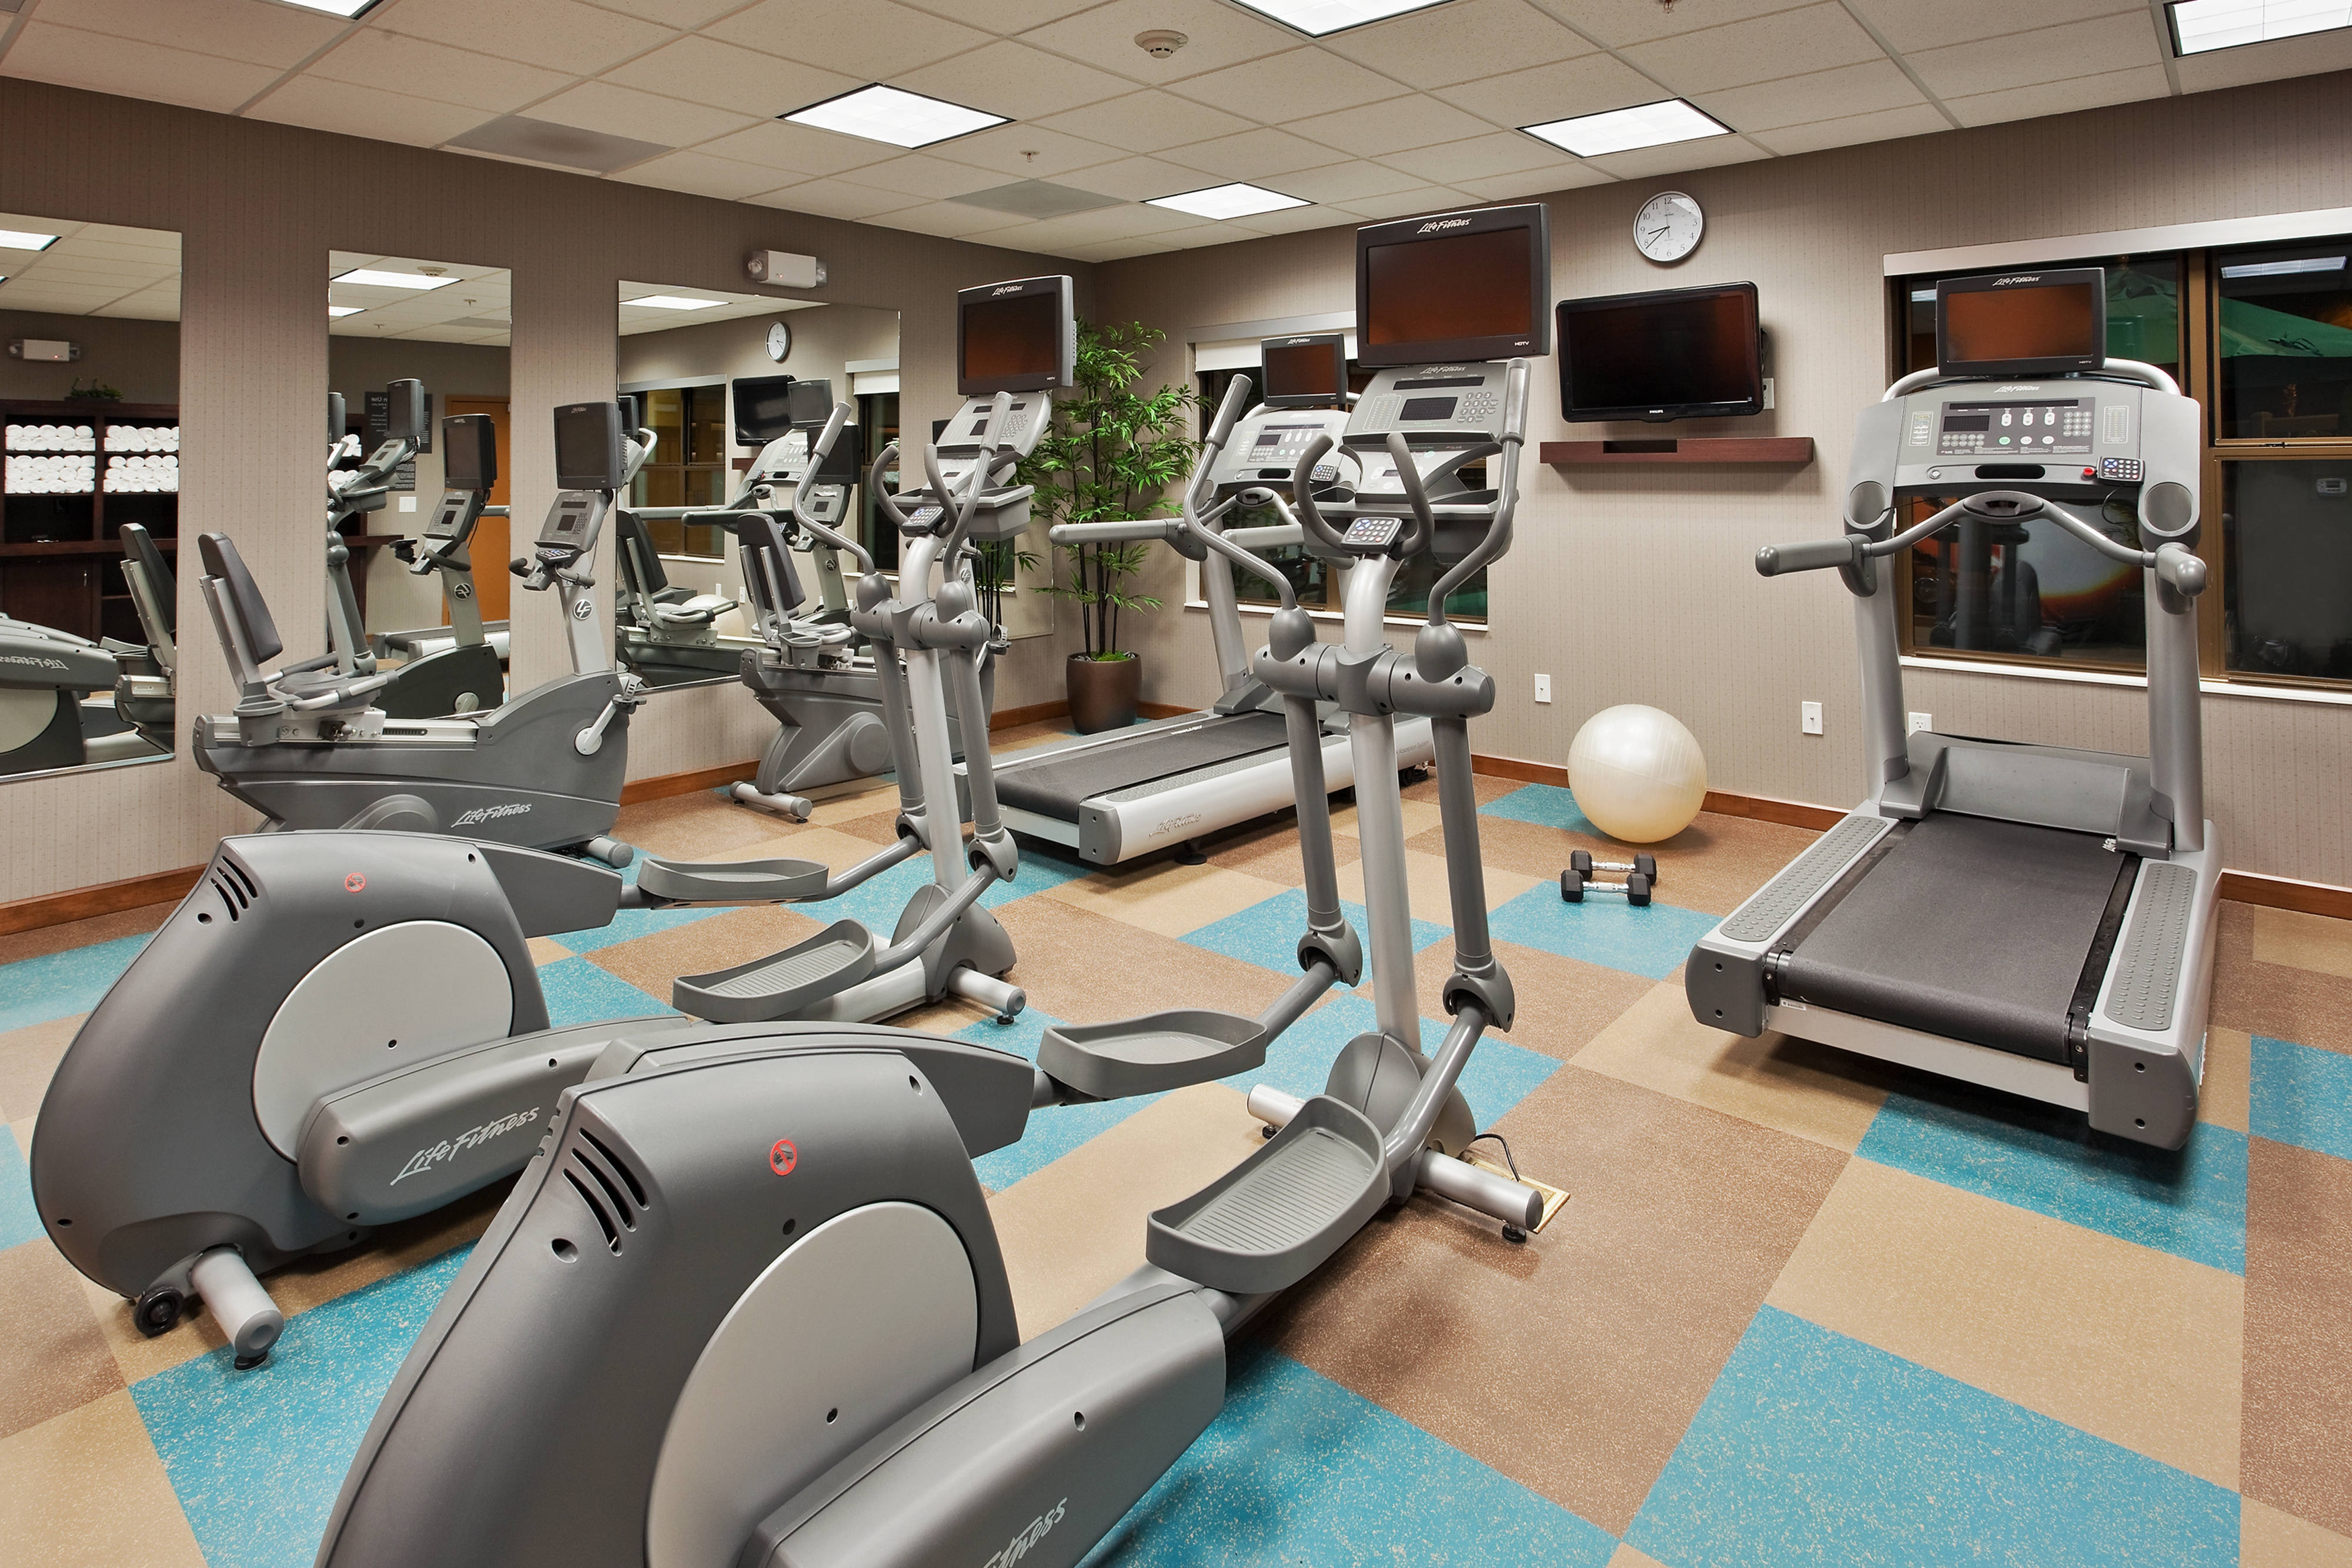 San Marcos Hotel Fitness